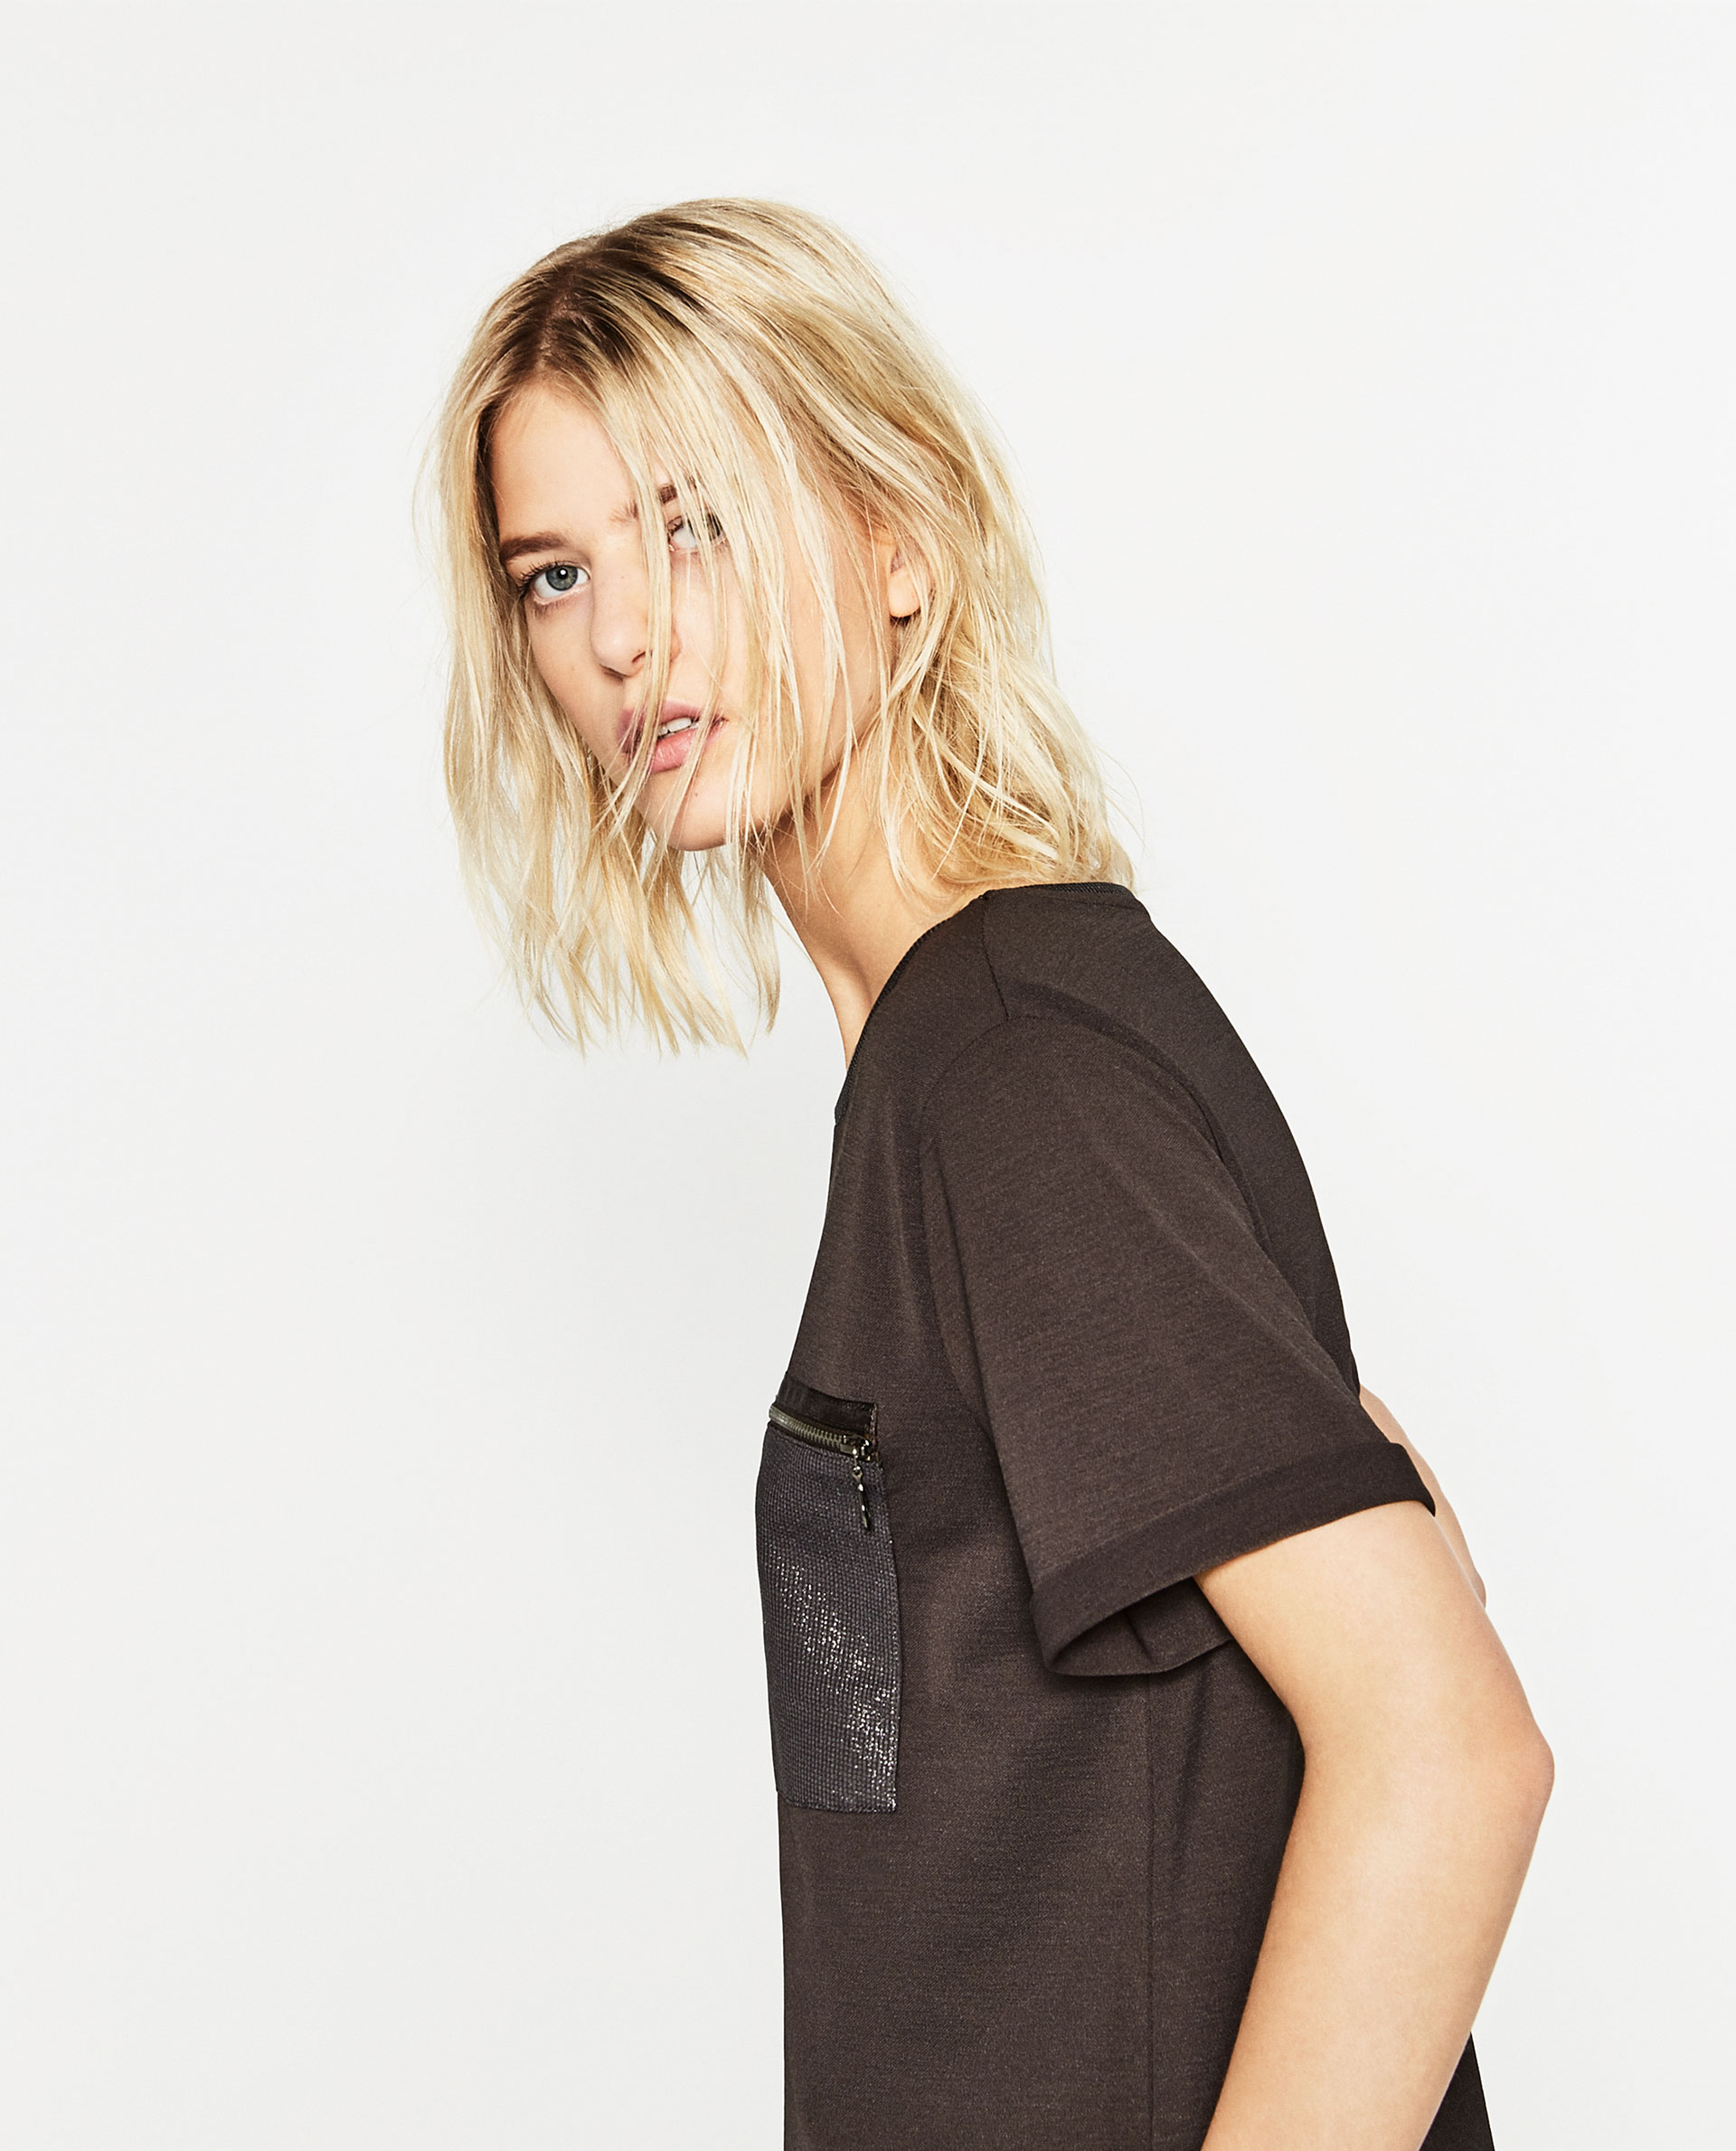 zara, black tshirt, cuffed sleeve